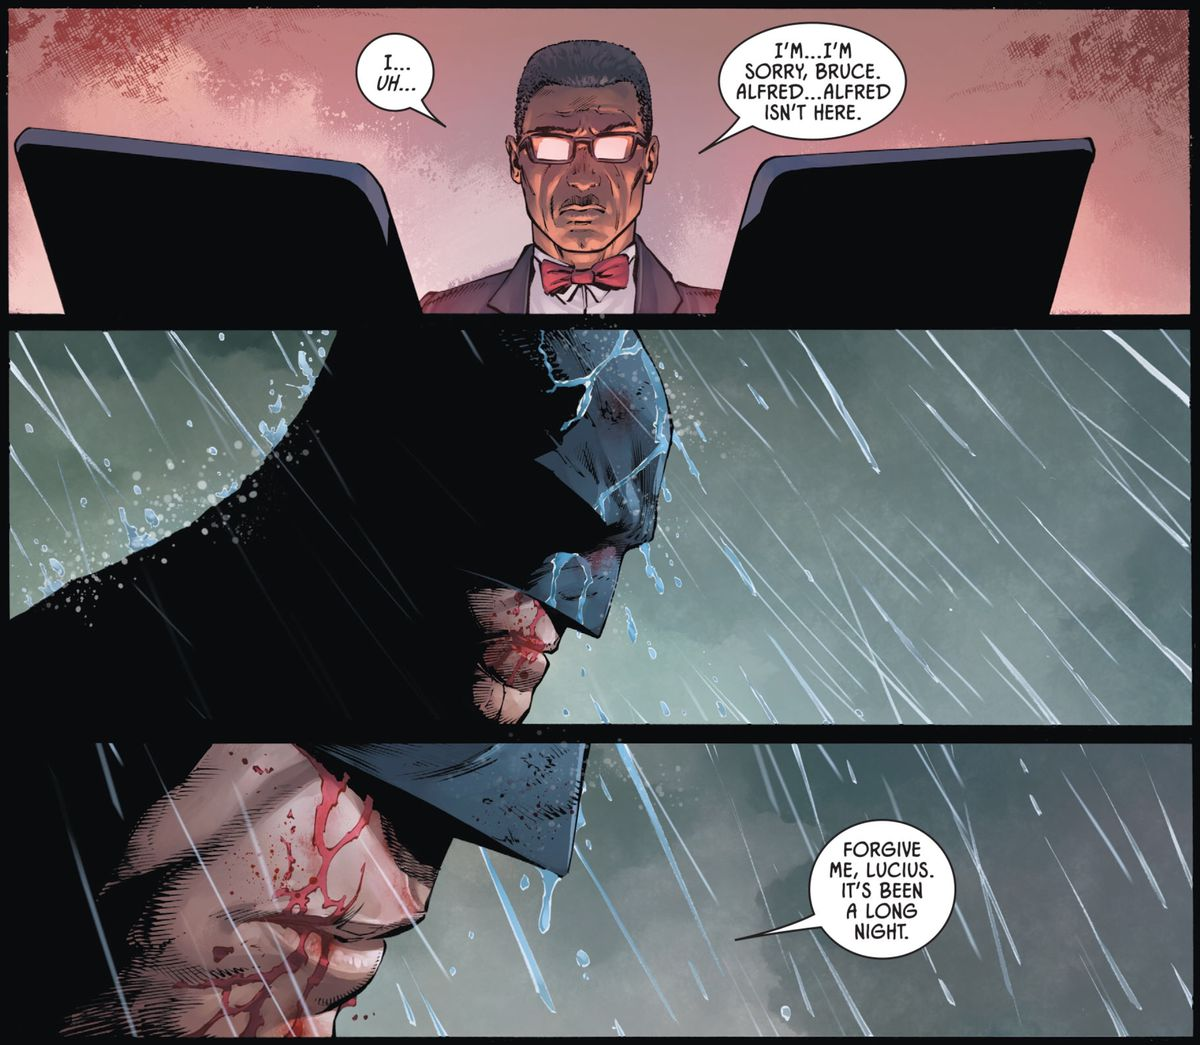 """""""I'm sorry, Bruce. Alfred... Alfred isn't here."""" Lucius says to Batman. Batman pauses, sadly, and then says """"Forgive me, Lucius, it's been a long night,"""" in Batman #86, DC Comics (2020)."""